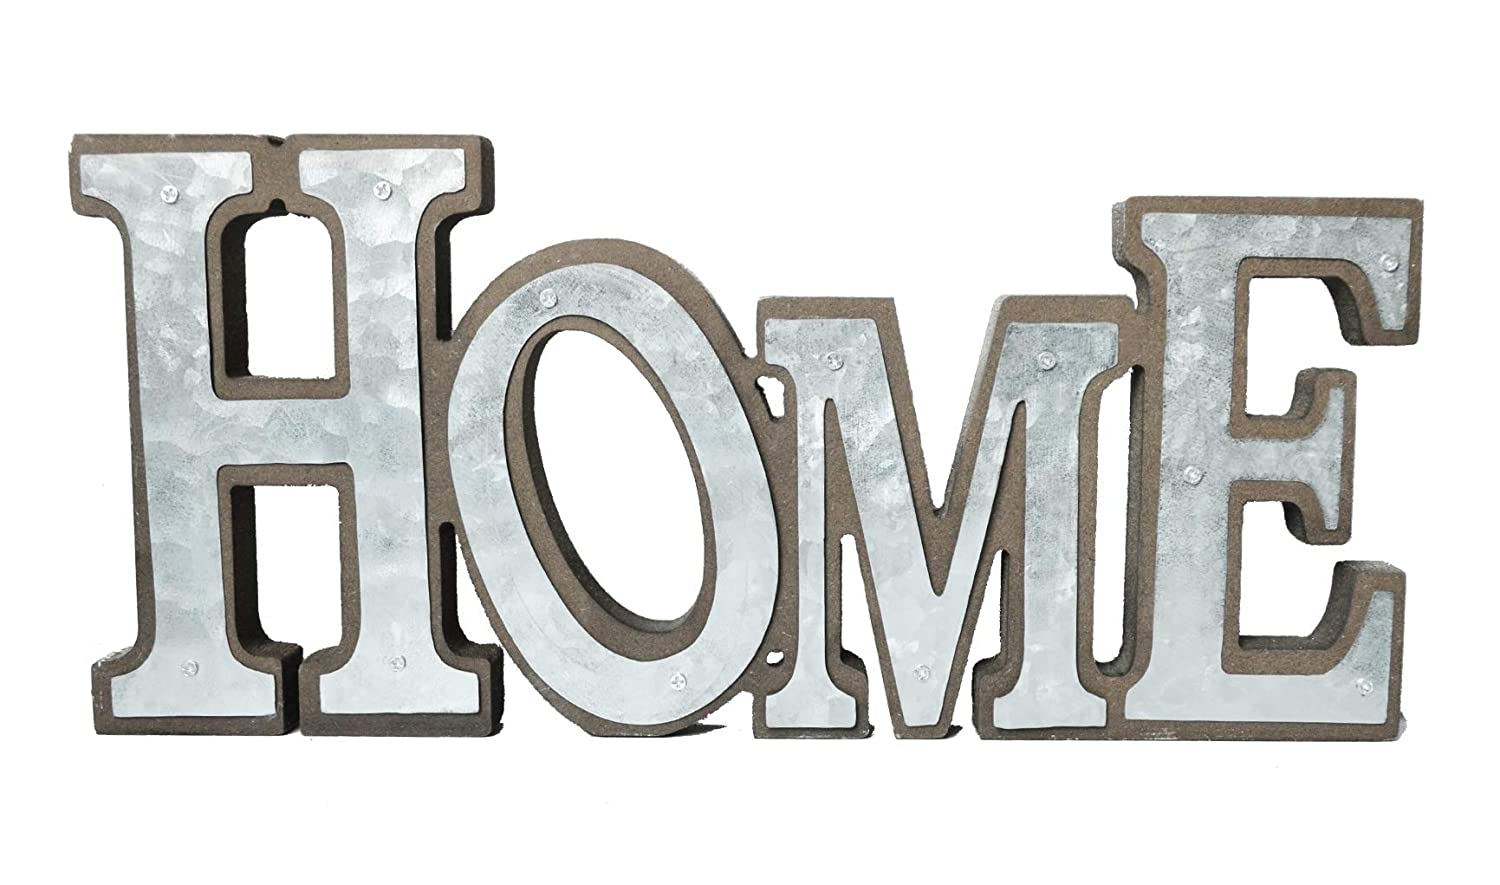 GIFTME 5 Galvanized Home Signs Standing Cutout Word Decorative Wooden Home Signs Decor